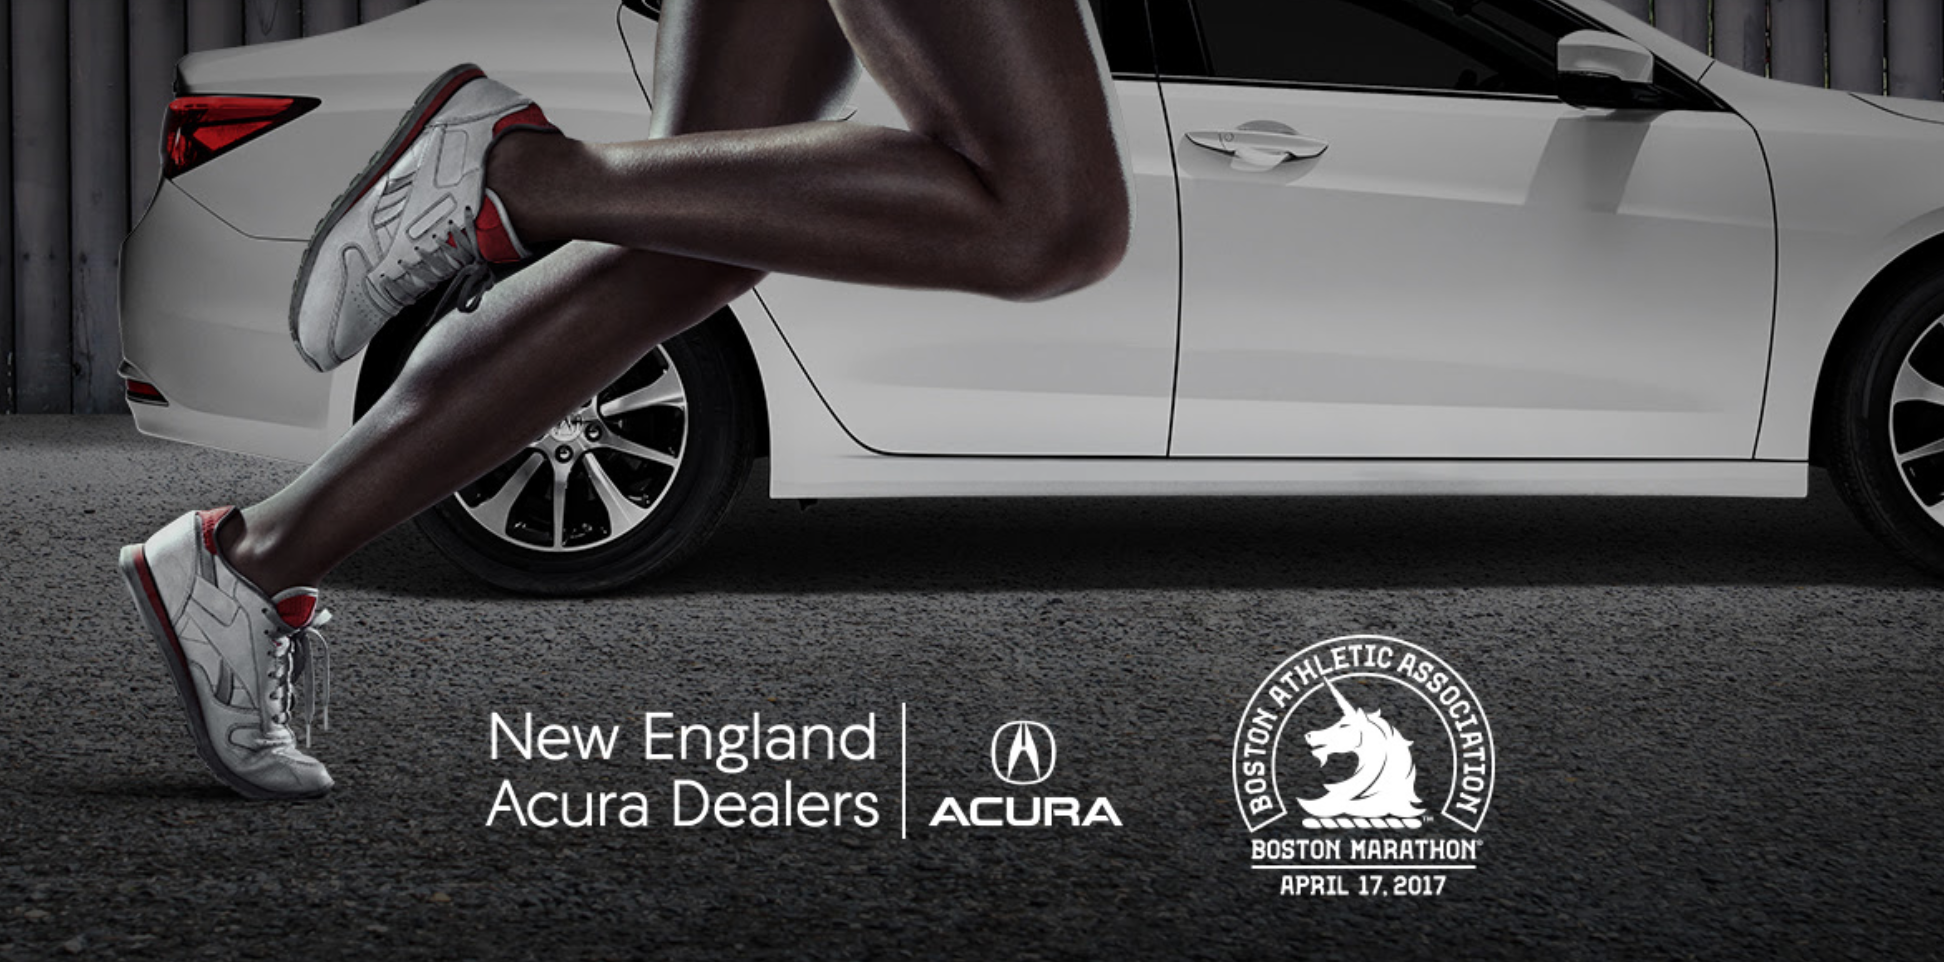 New England Acura Dealers Sponsor Boston Marathon for Second Year